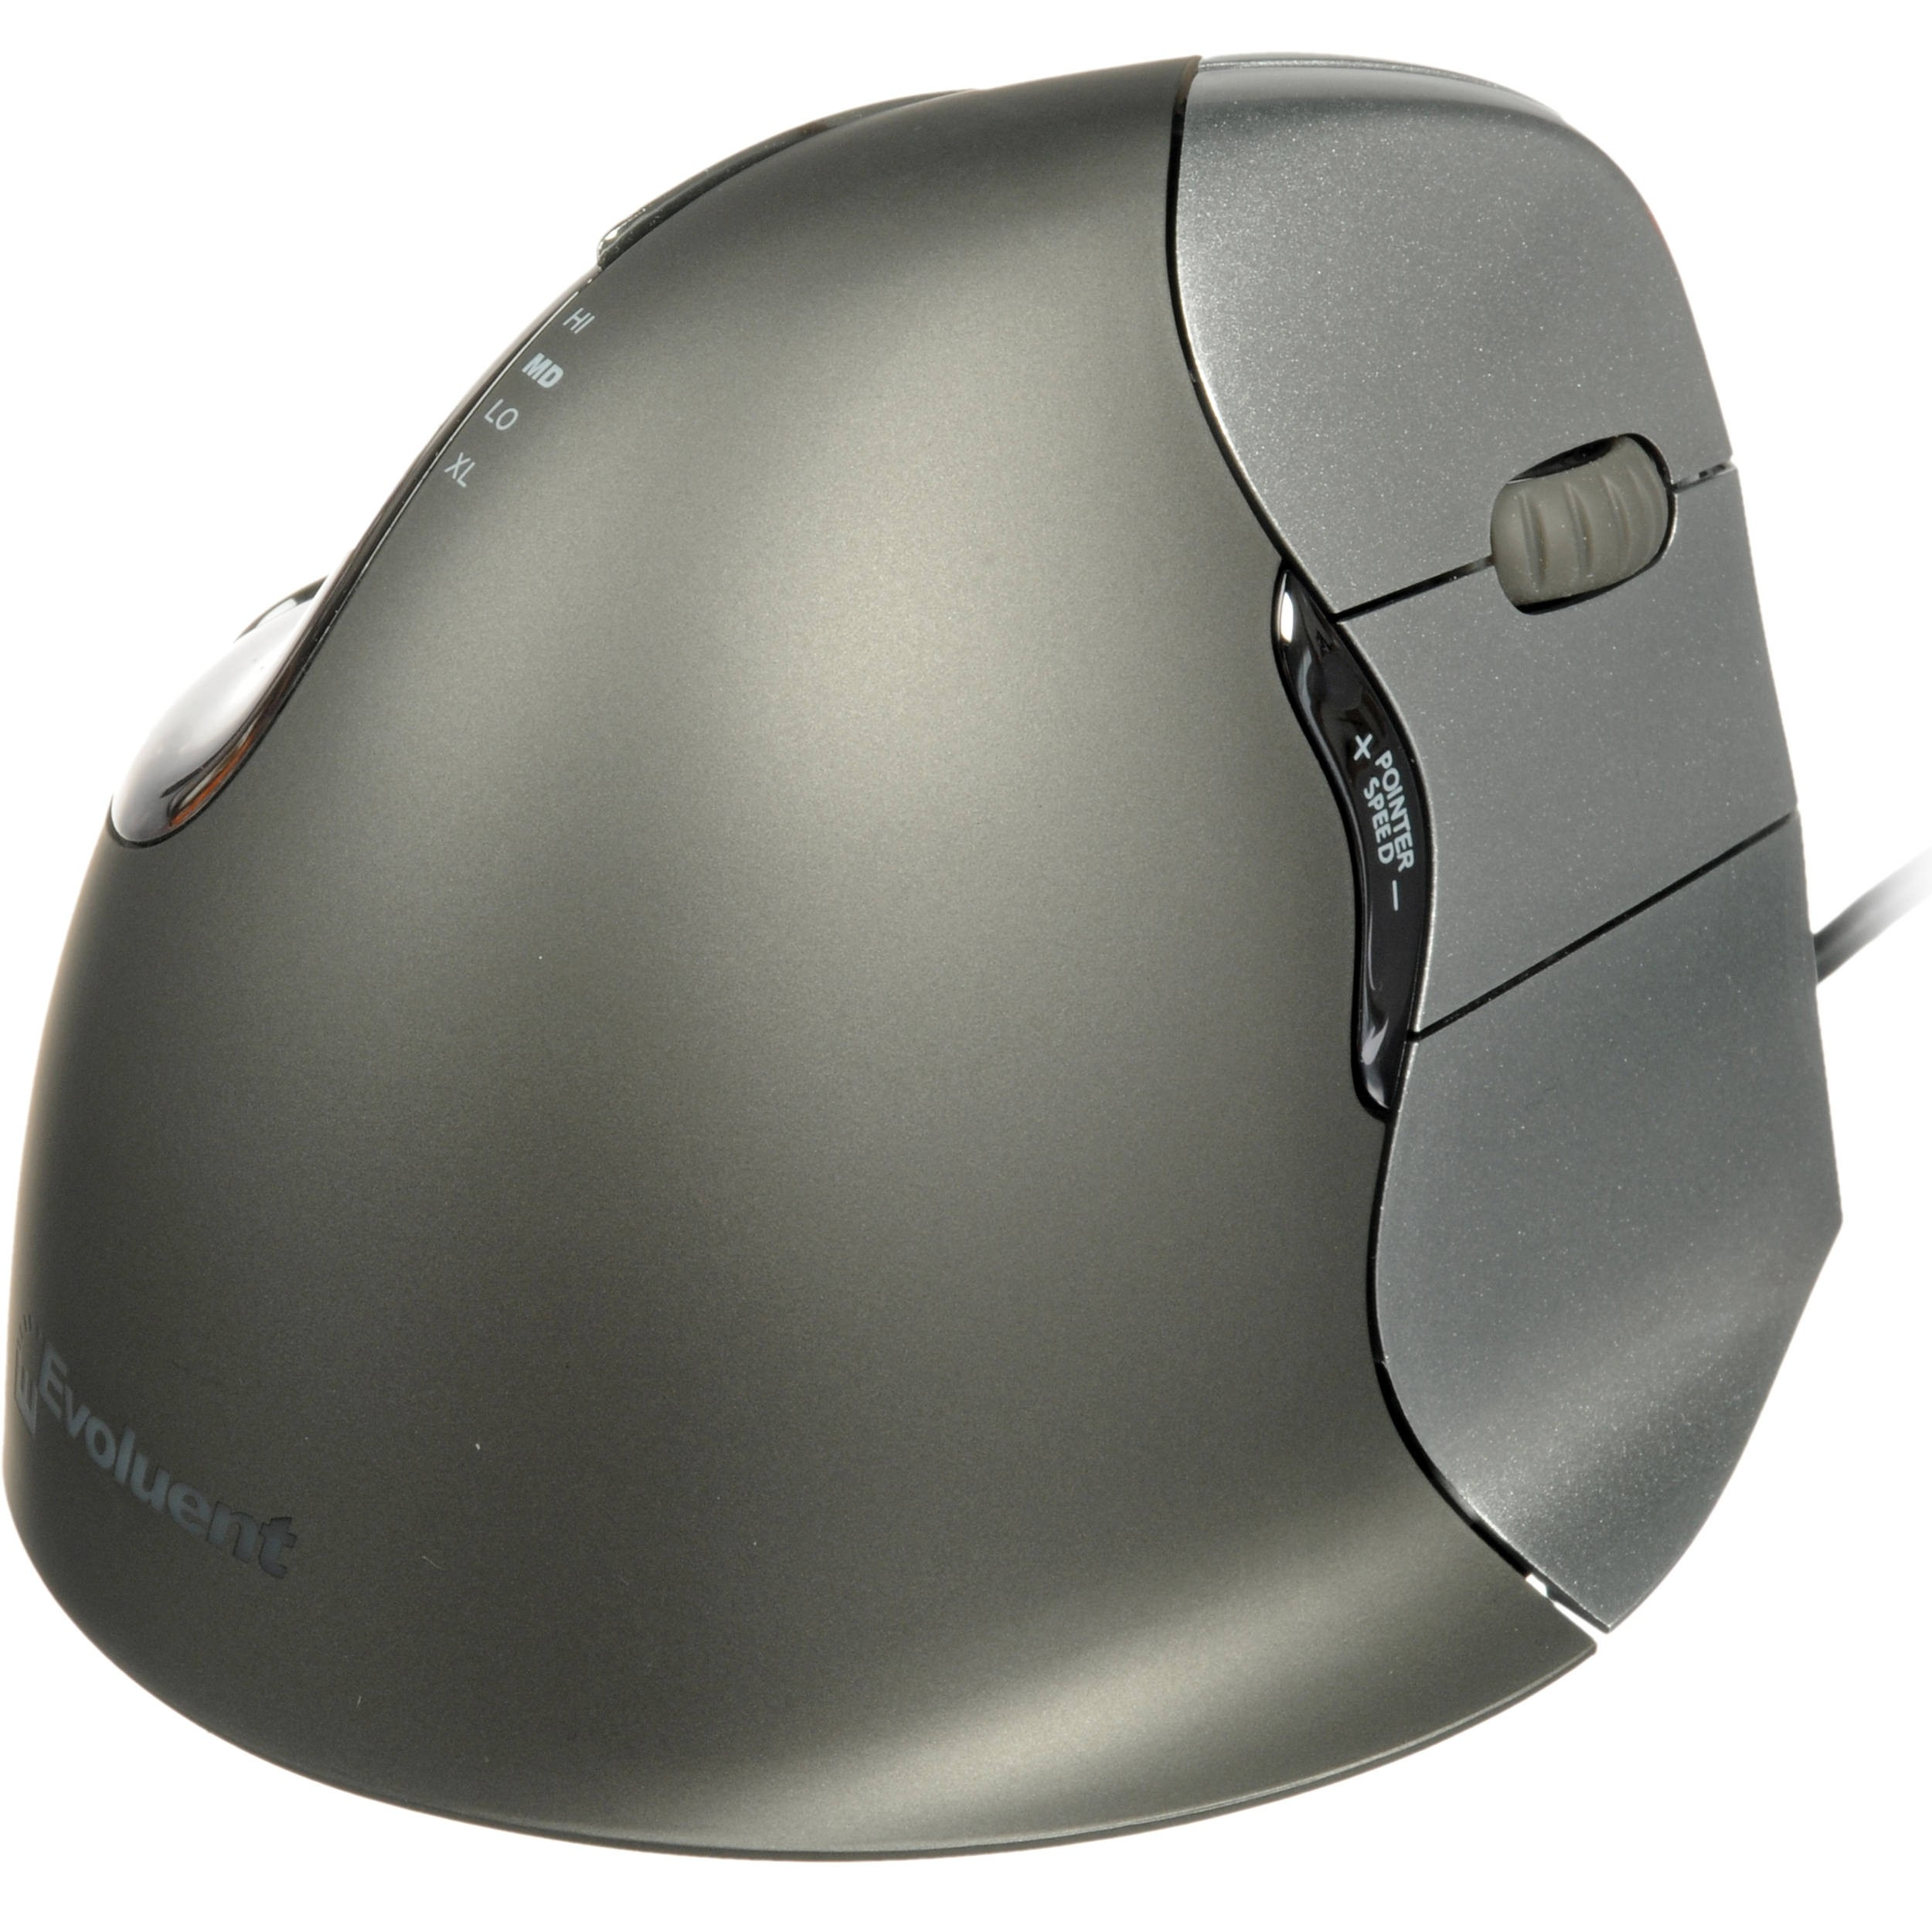 Evoluent VerticalMouse 4, Wired Right-Hand, EVVM4R